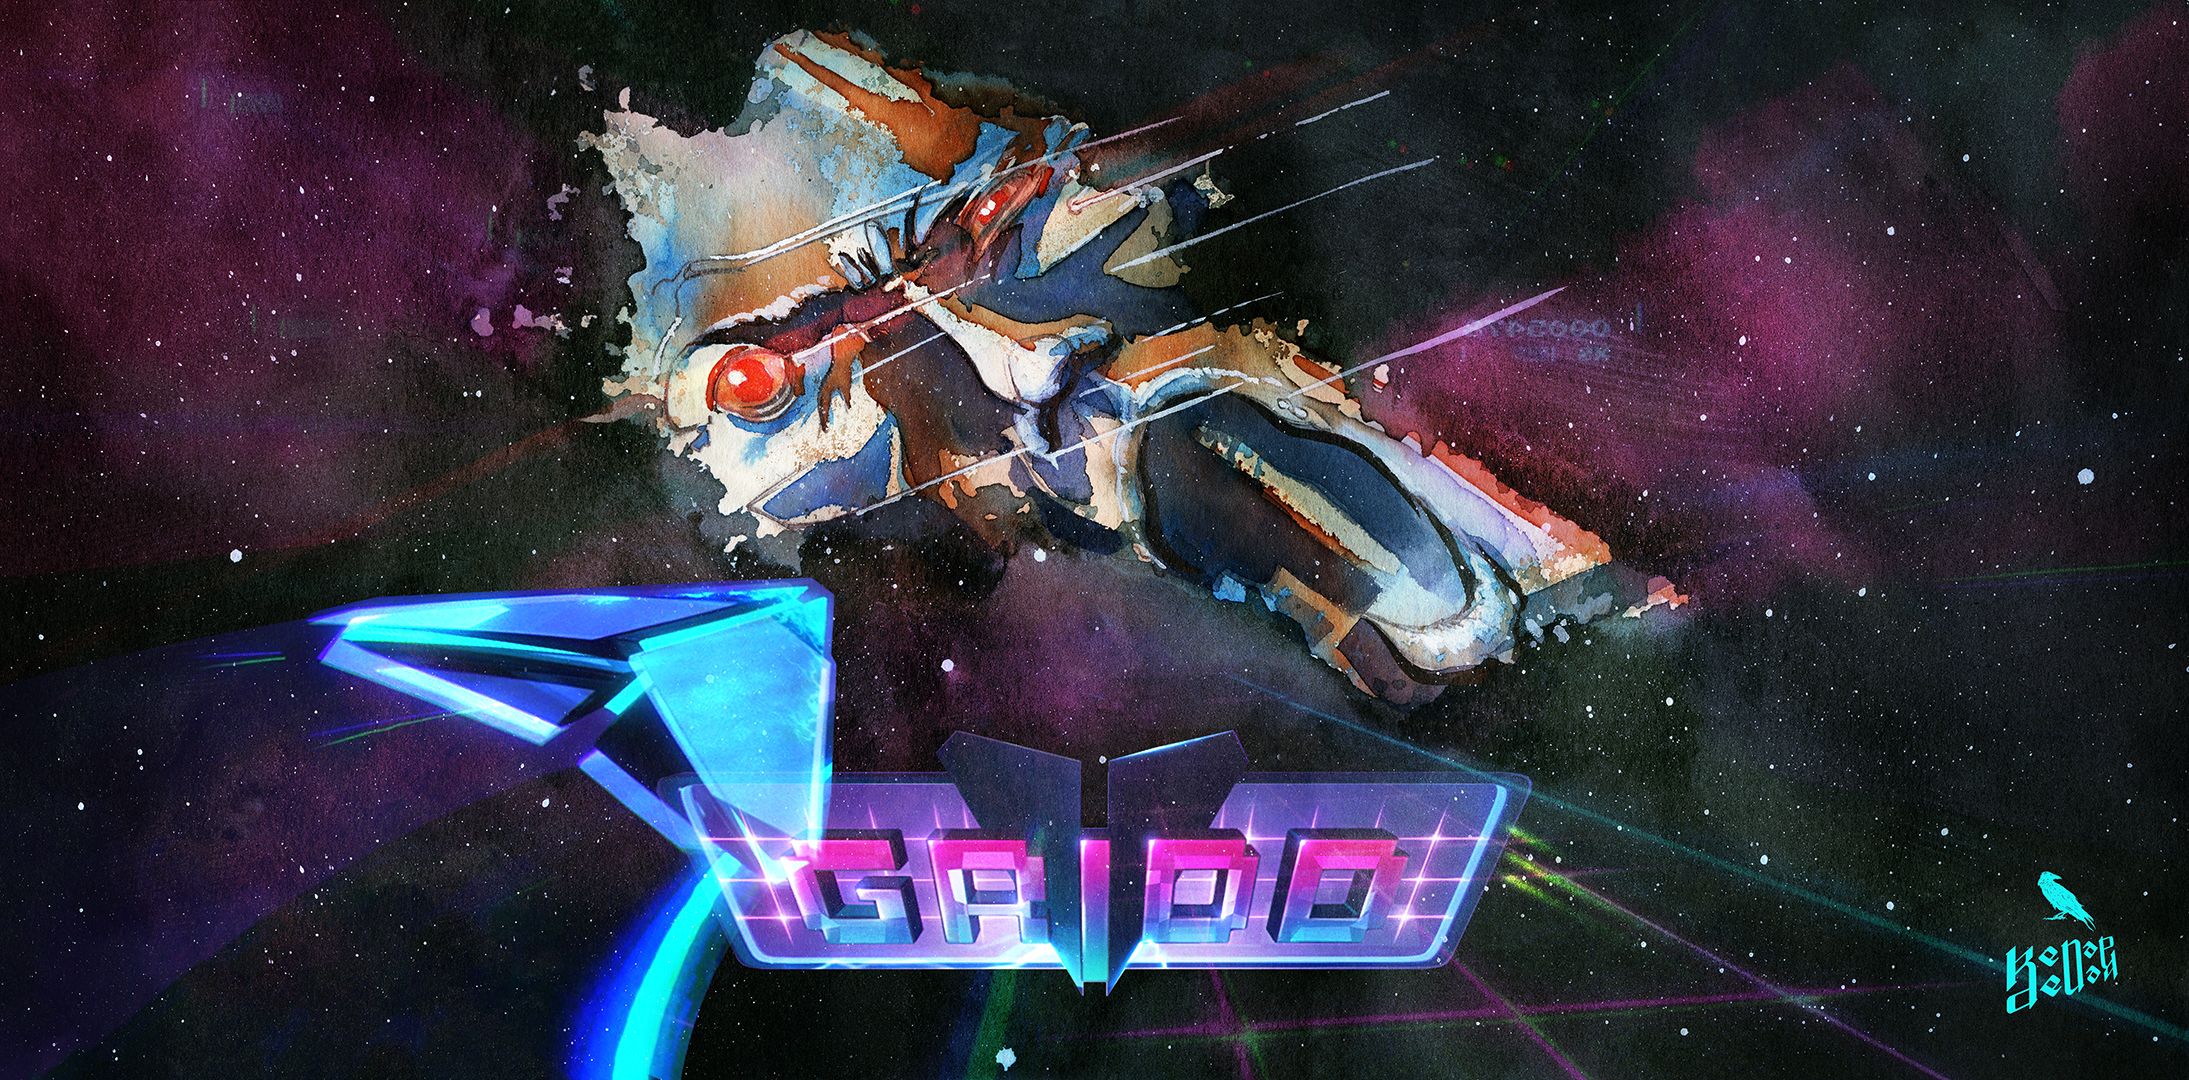 Gridd Retroenhanced magazine cover